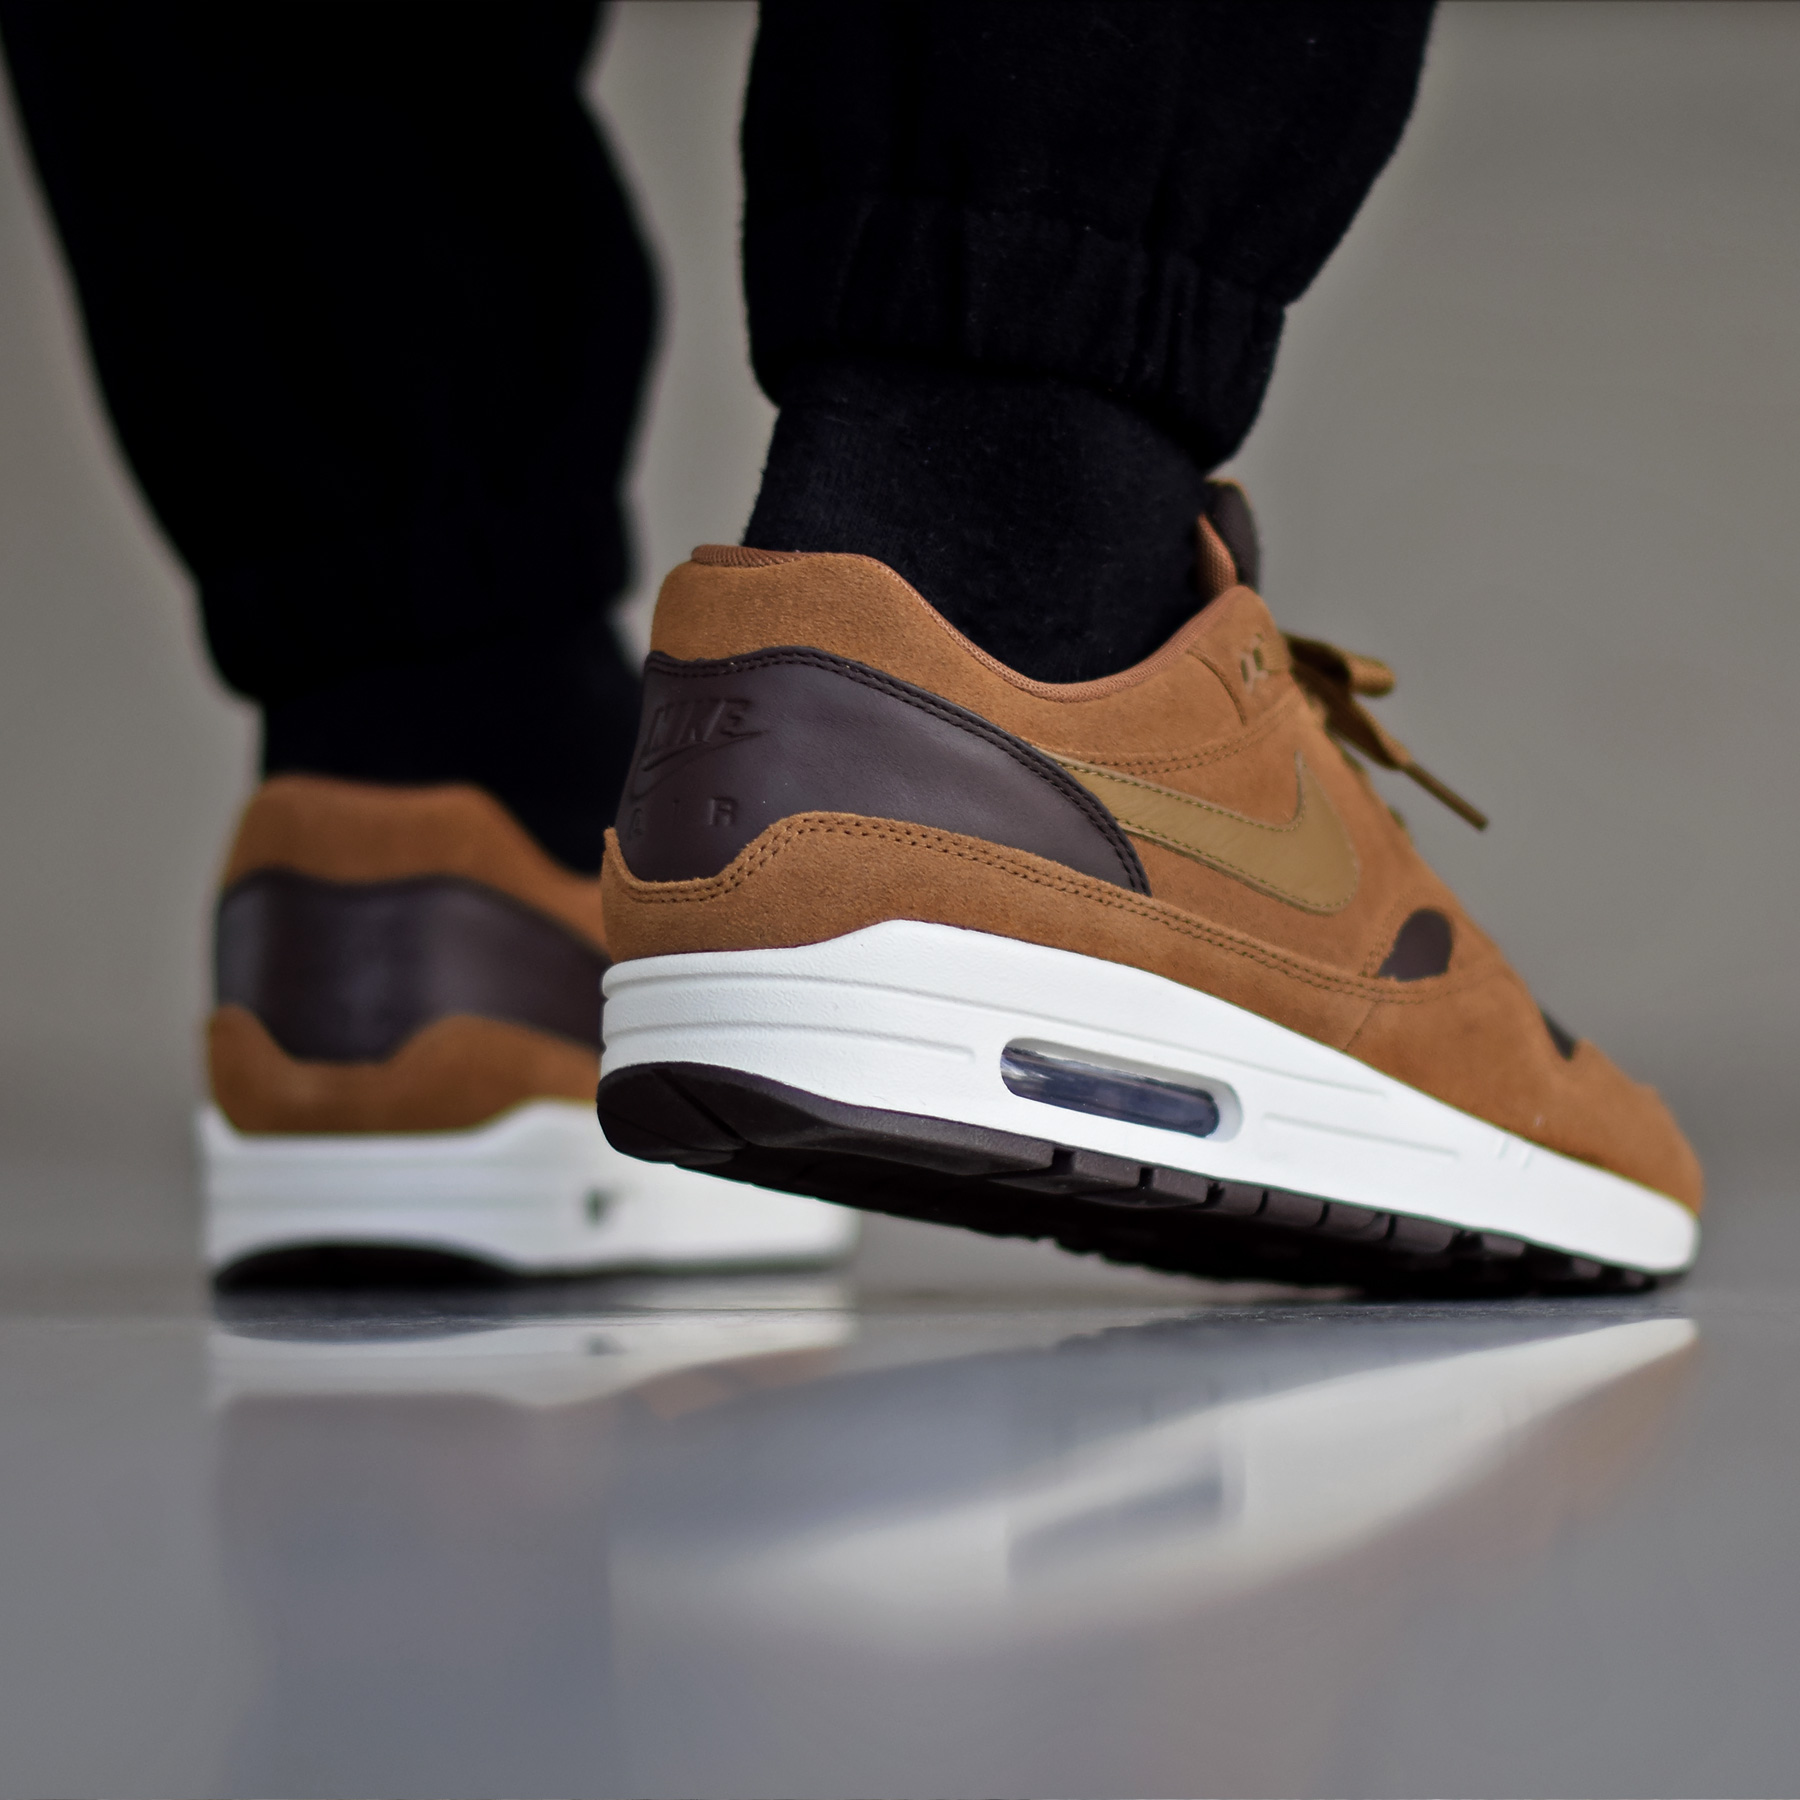 design de qualité 4878a 6a9a5 Nike Air Max 1 Premium Leather Ale Brown - Sneakers.fr